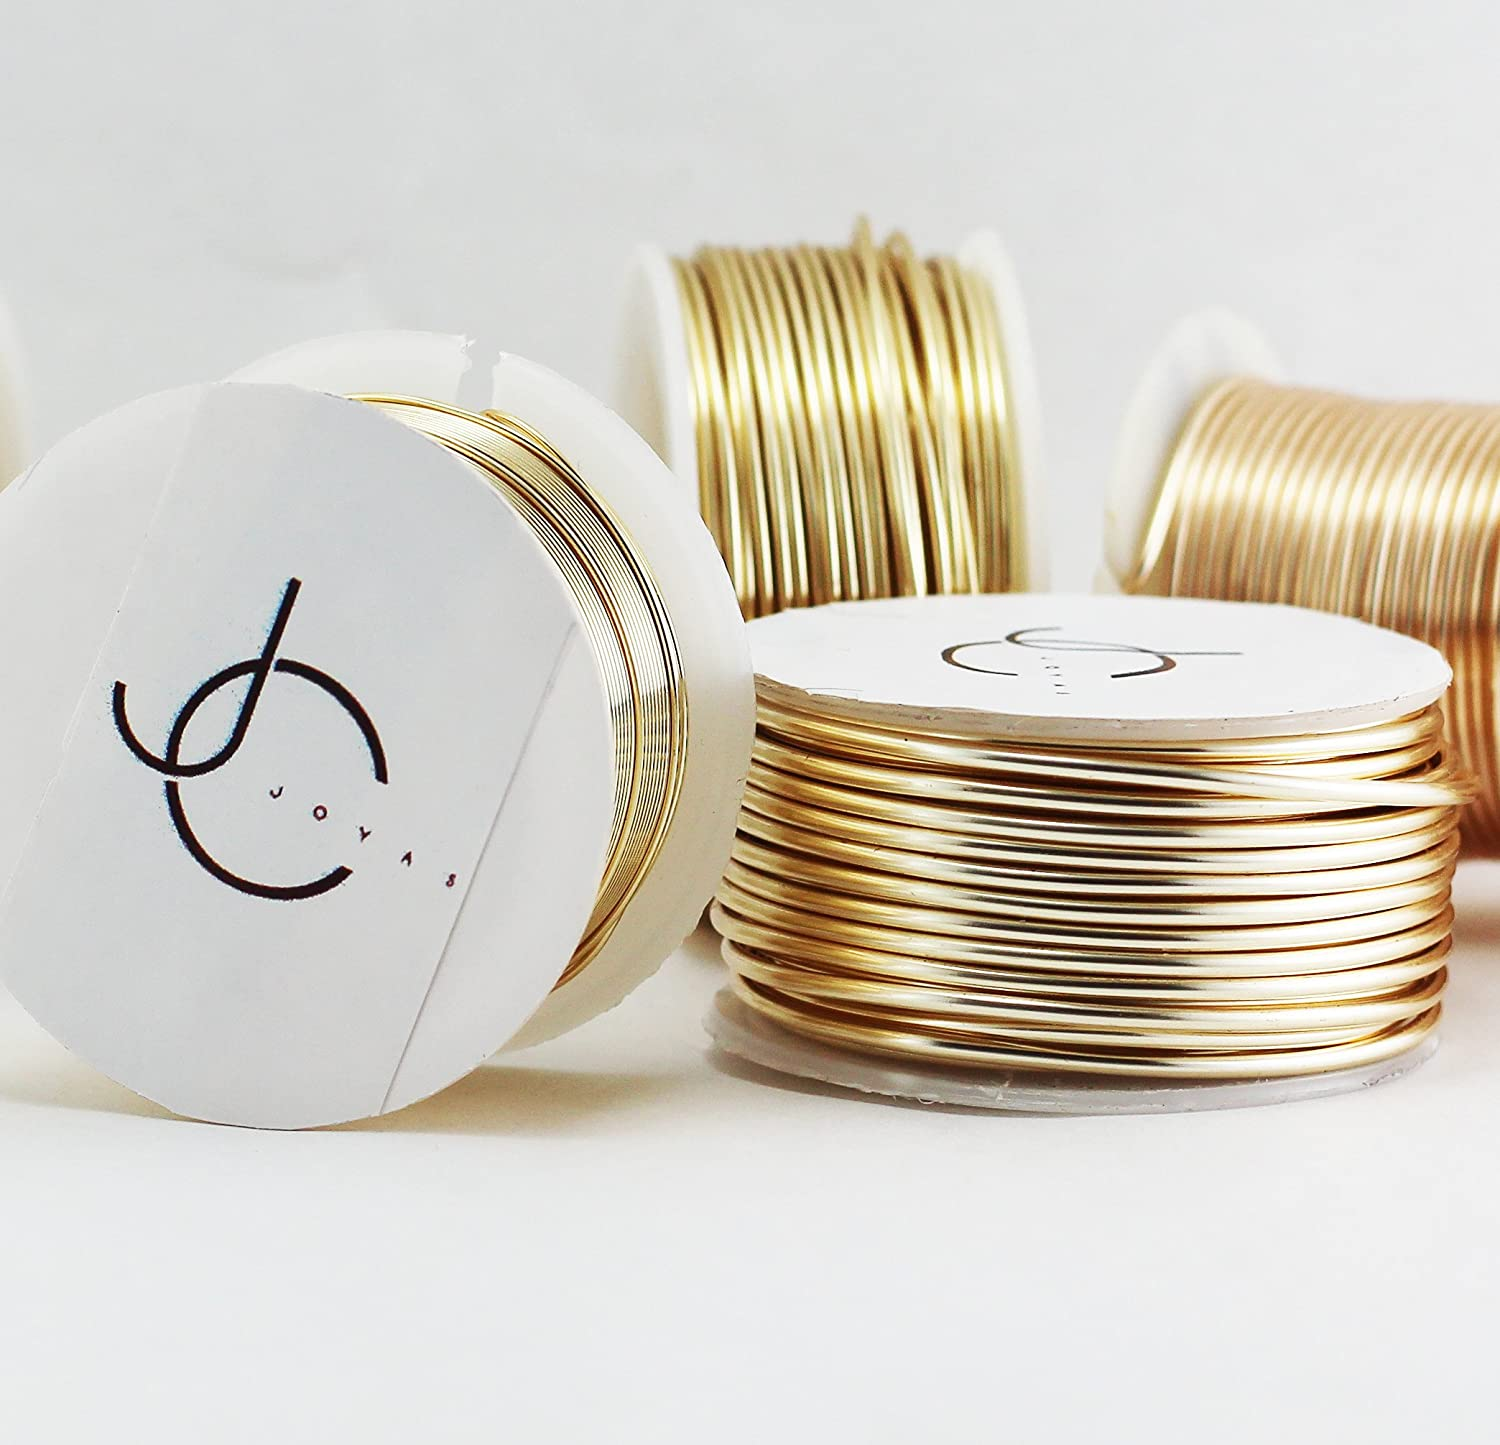 Creartejoyas Full Reel Wire 16 AWG Gold Filled Covert with Golden Polymer.